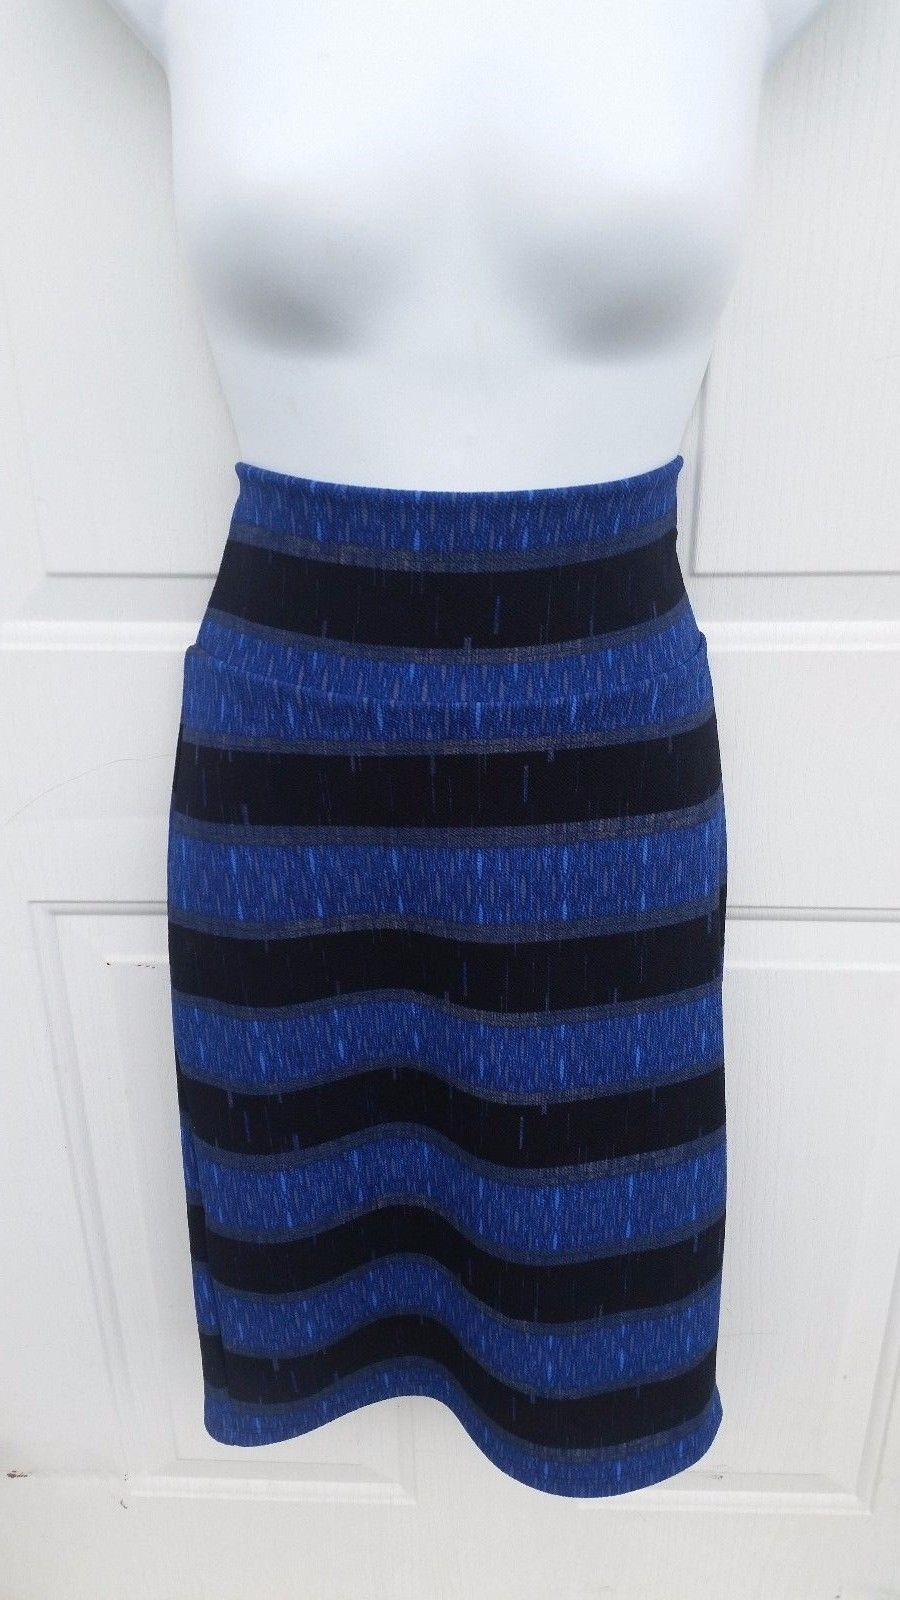 ca8e8c051f2ad Lularoe Small Cassie Pencil Skirt Blue Black and 50 similar items